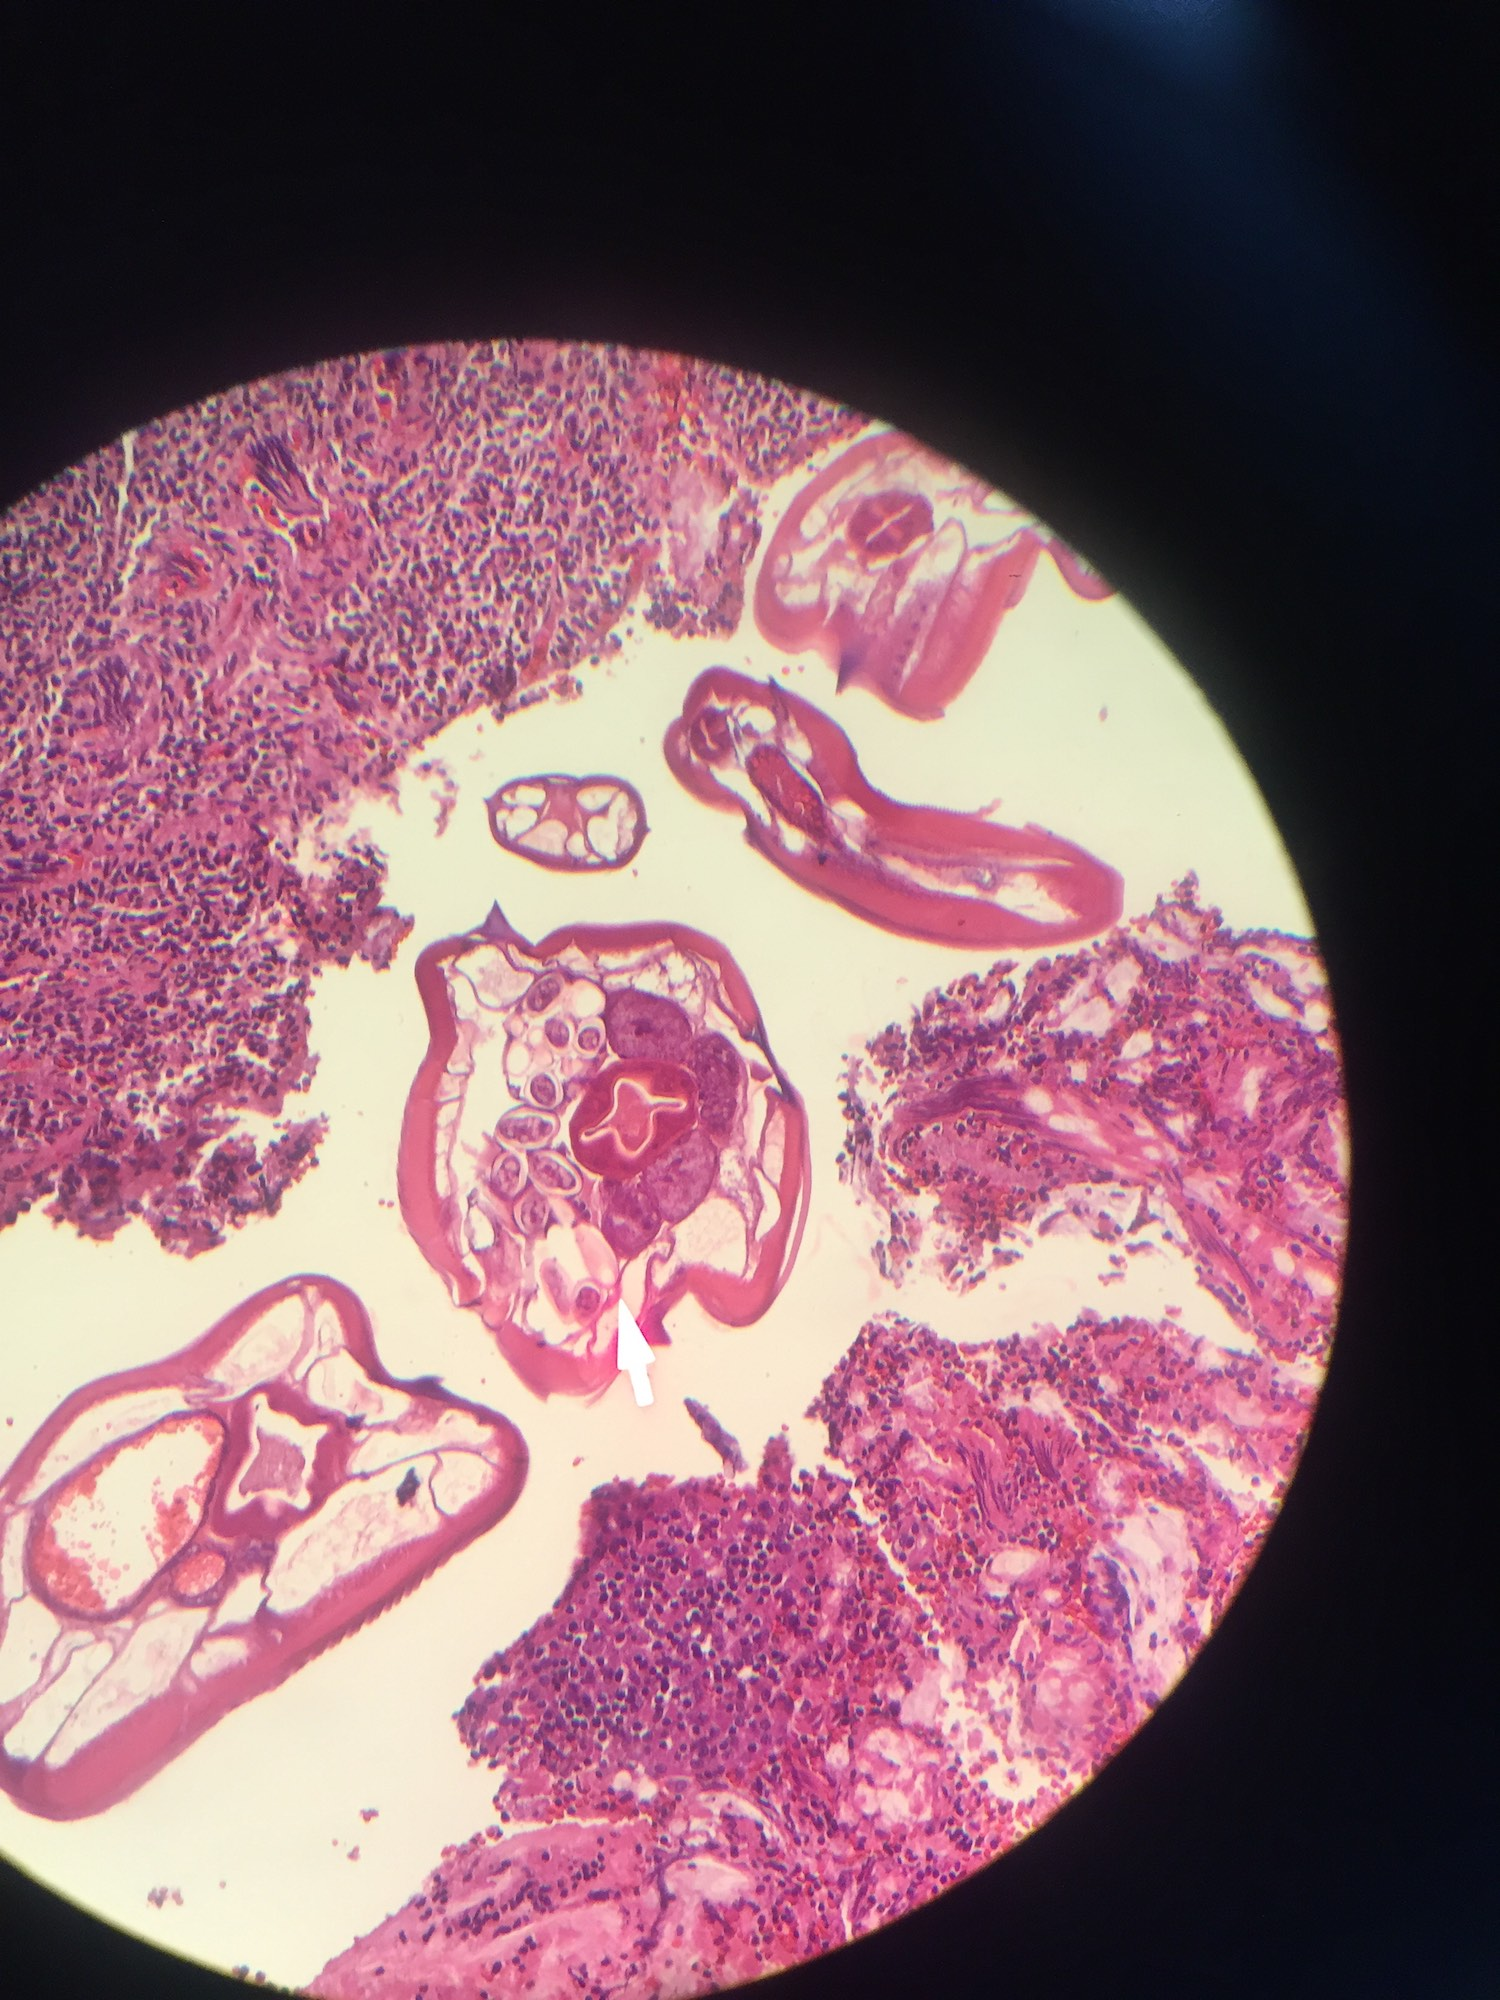 enterobius vermicularis histopathology)